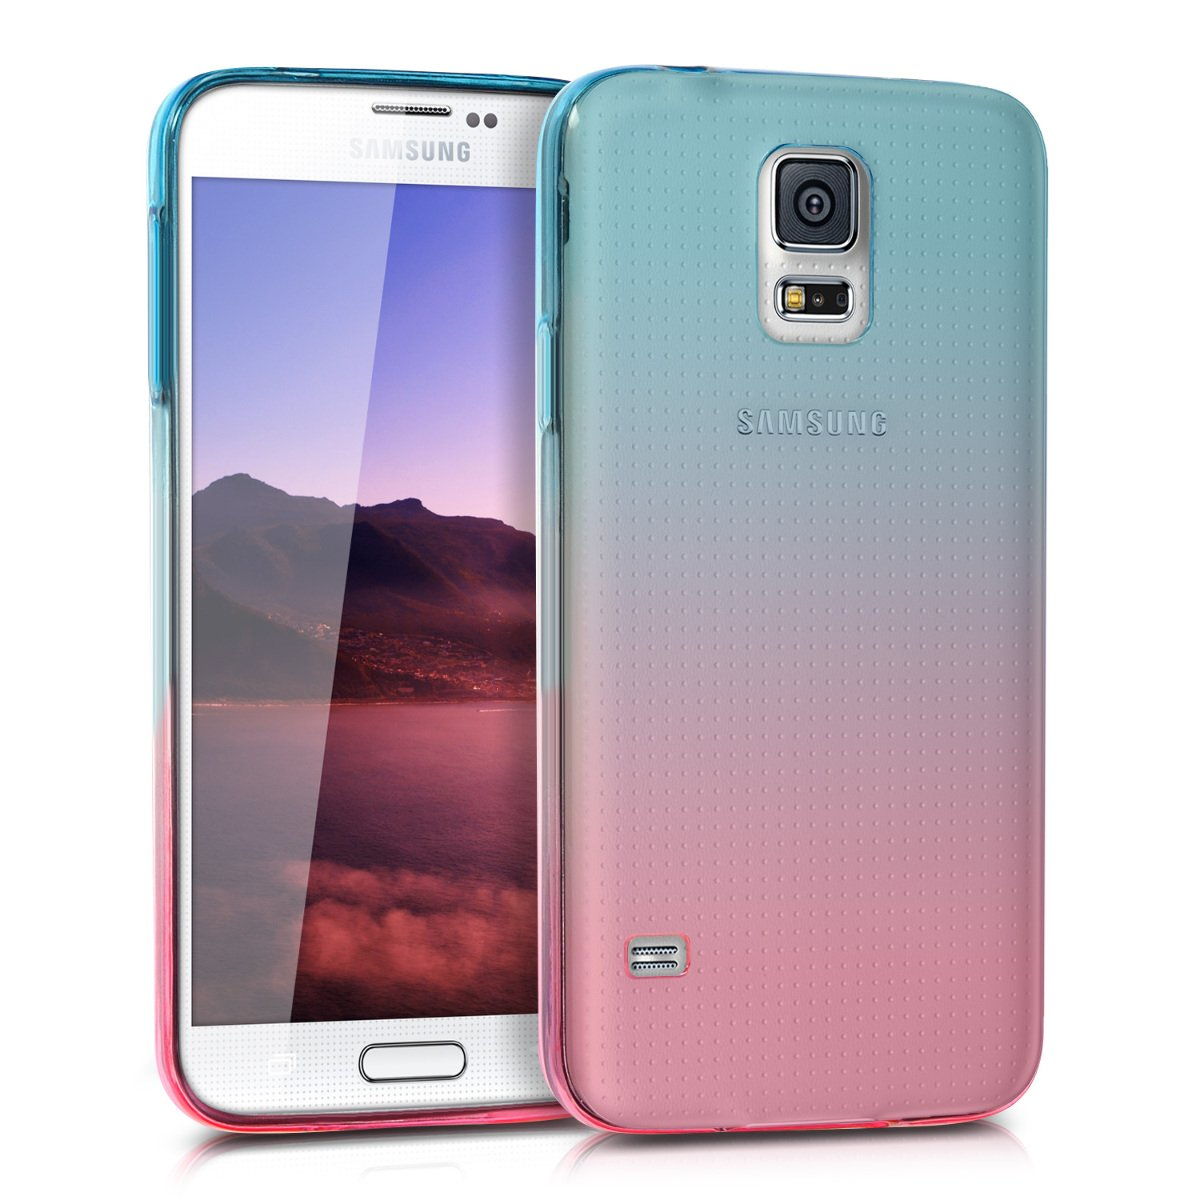 samsung s5 neo cases amazon co ukkwmobile case for samsung galaxy s5 s5 neo clear tpu soft phone cover